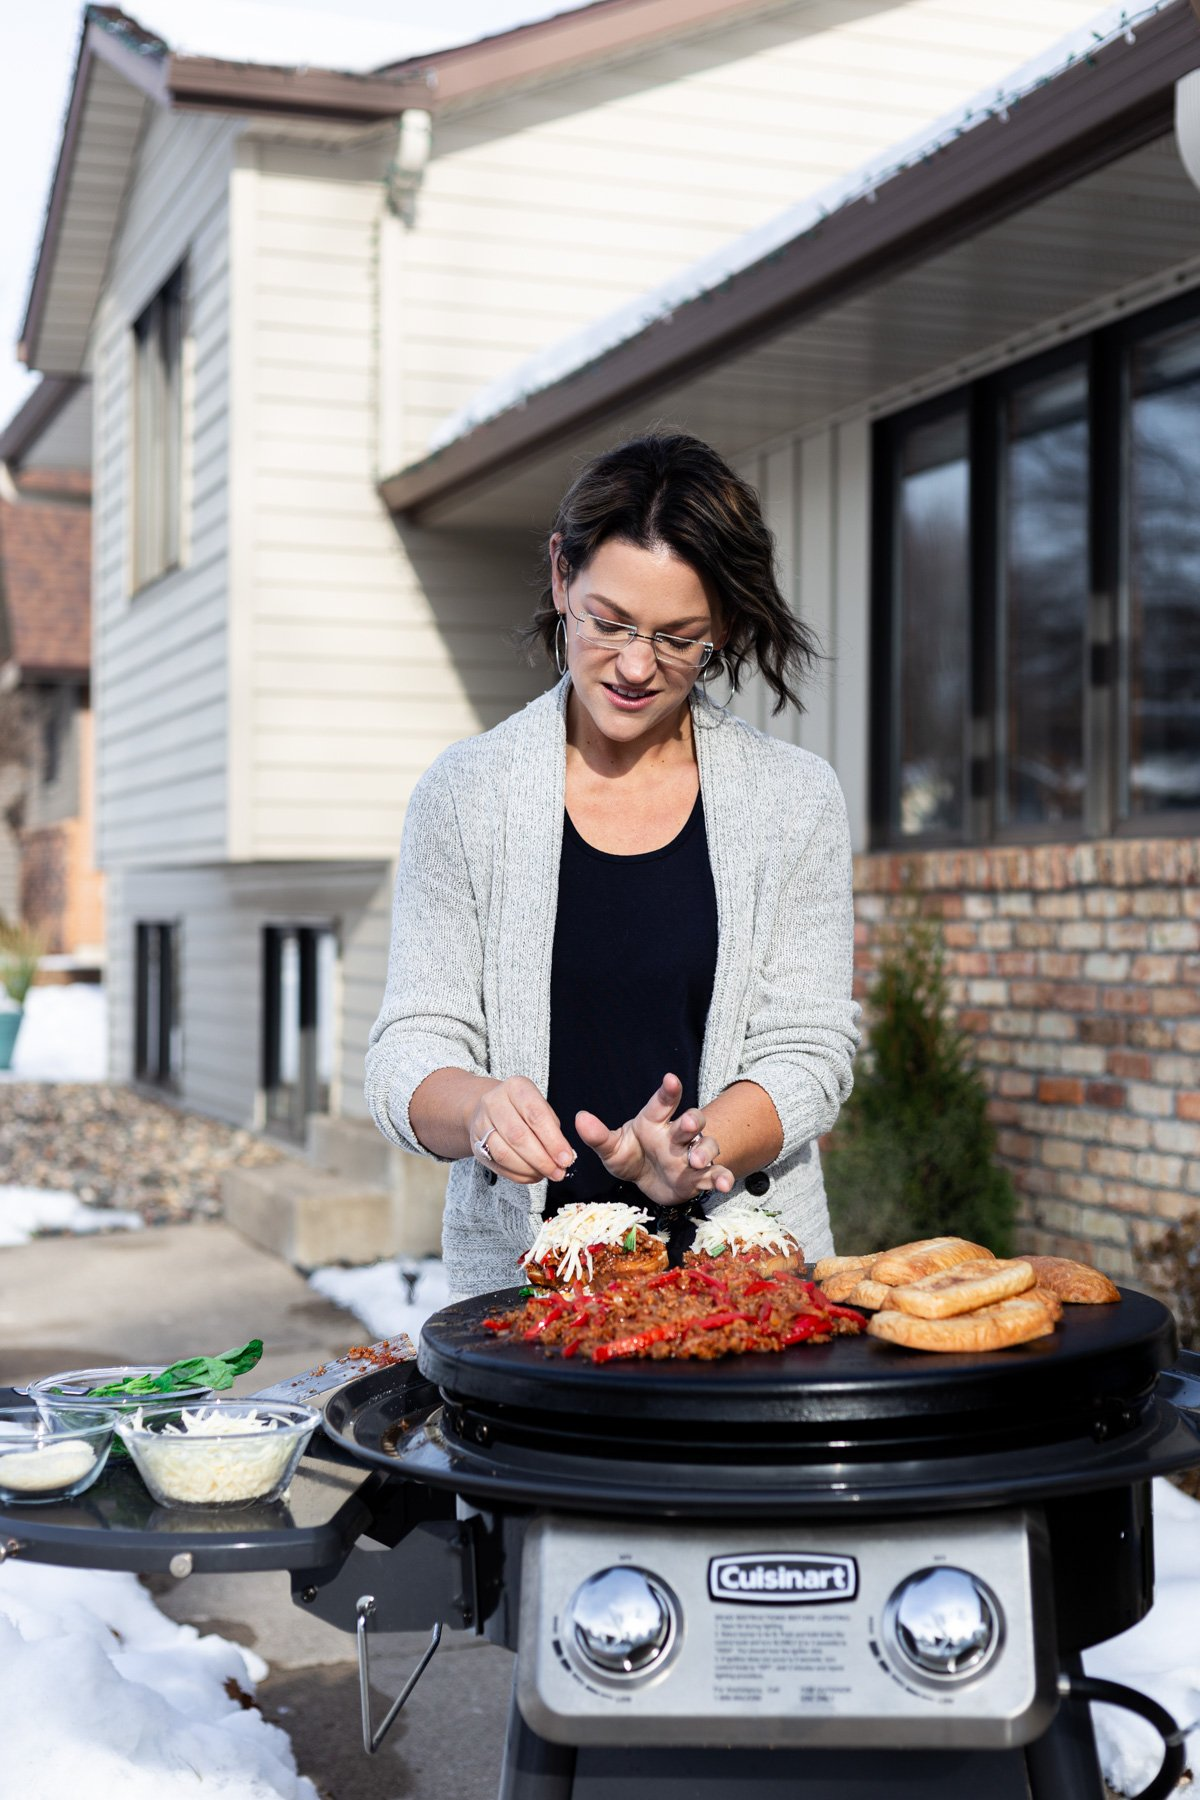 karly gomez preparing sausage and peppers sliders on an outdoor griddle